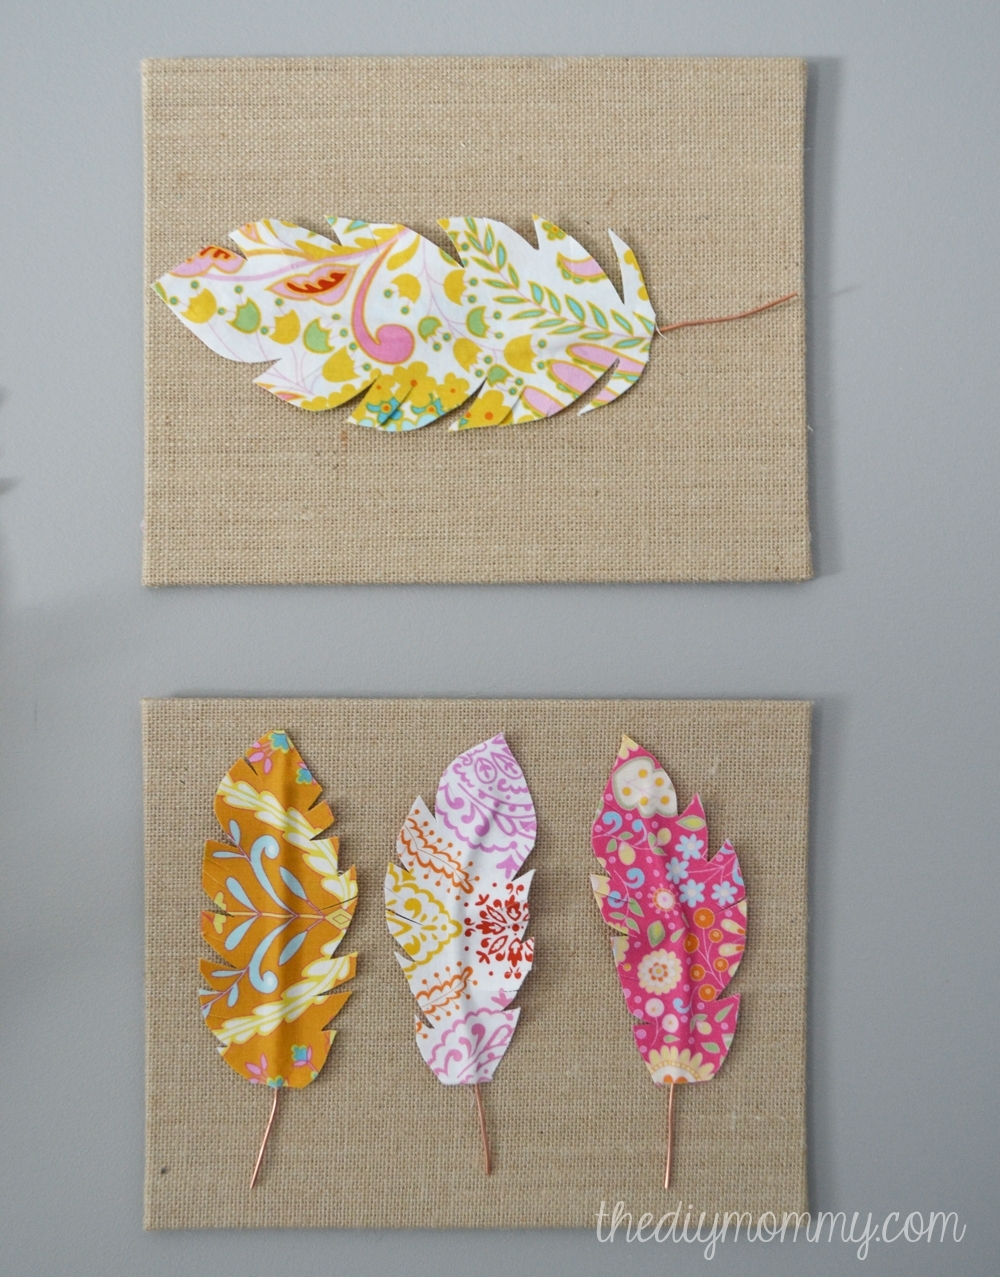 Make Fabric Feather Wall Art | The Diy Mommy Intended For Most Current Diy Fabric Canvas Wall Art (View 5 of 15)